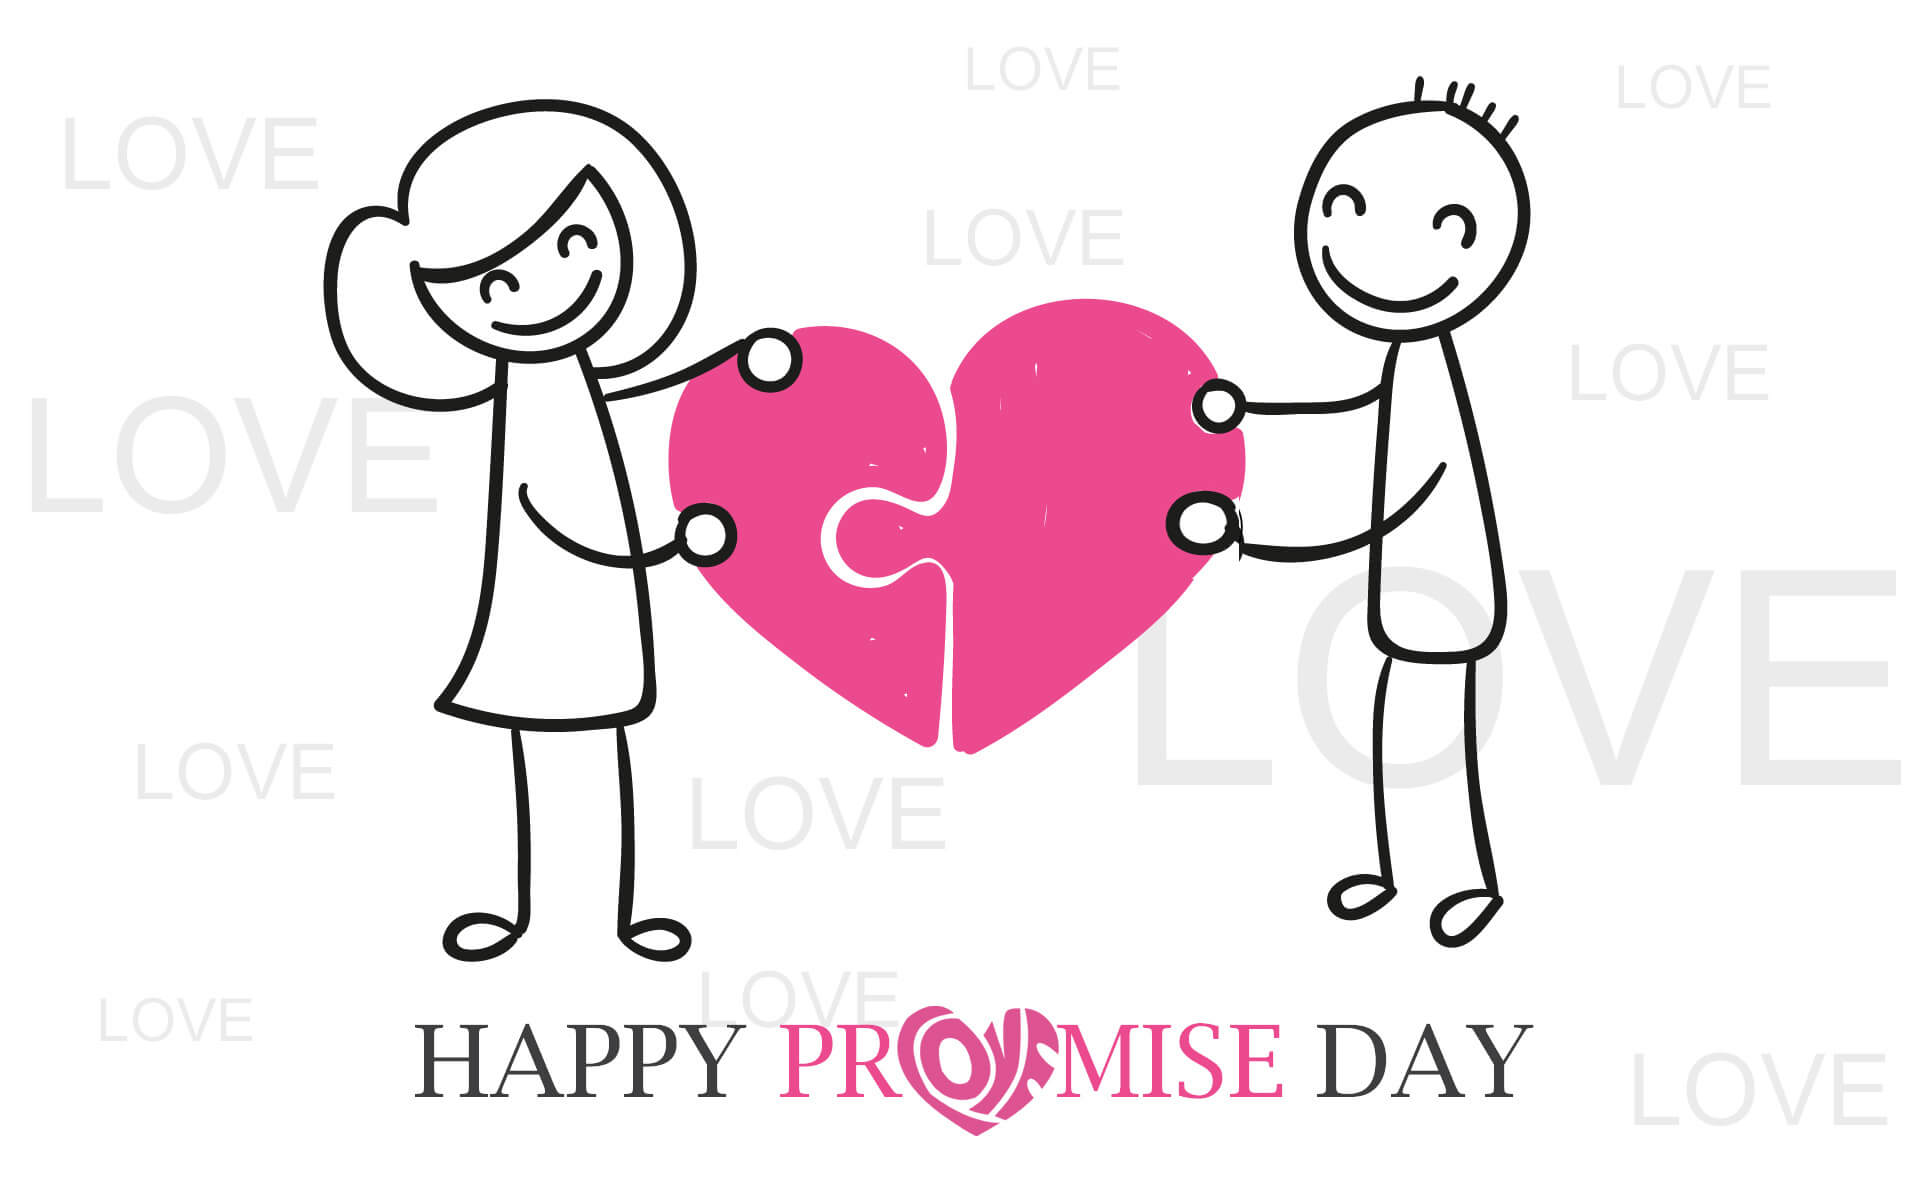 happy promise day wishes love valentine cartoon sketch cute hd wallpaper